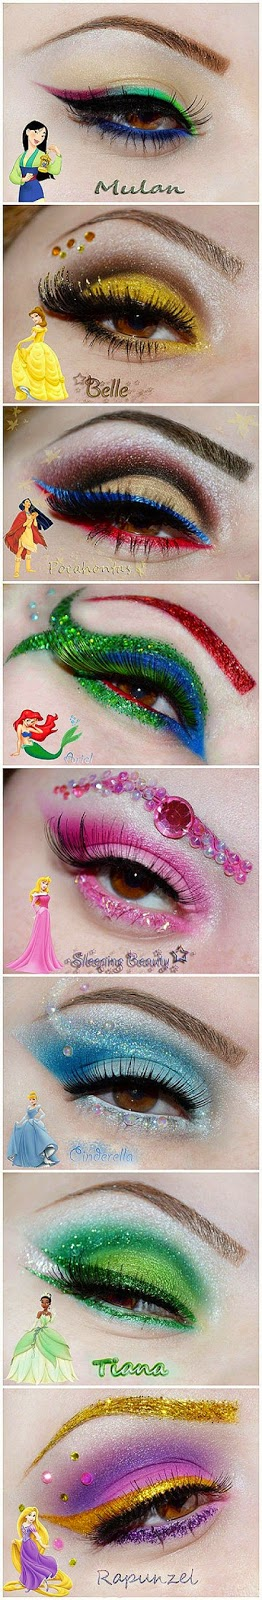 Beautify COOL TRENDS FOR EYE MAKEUP